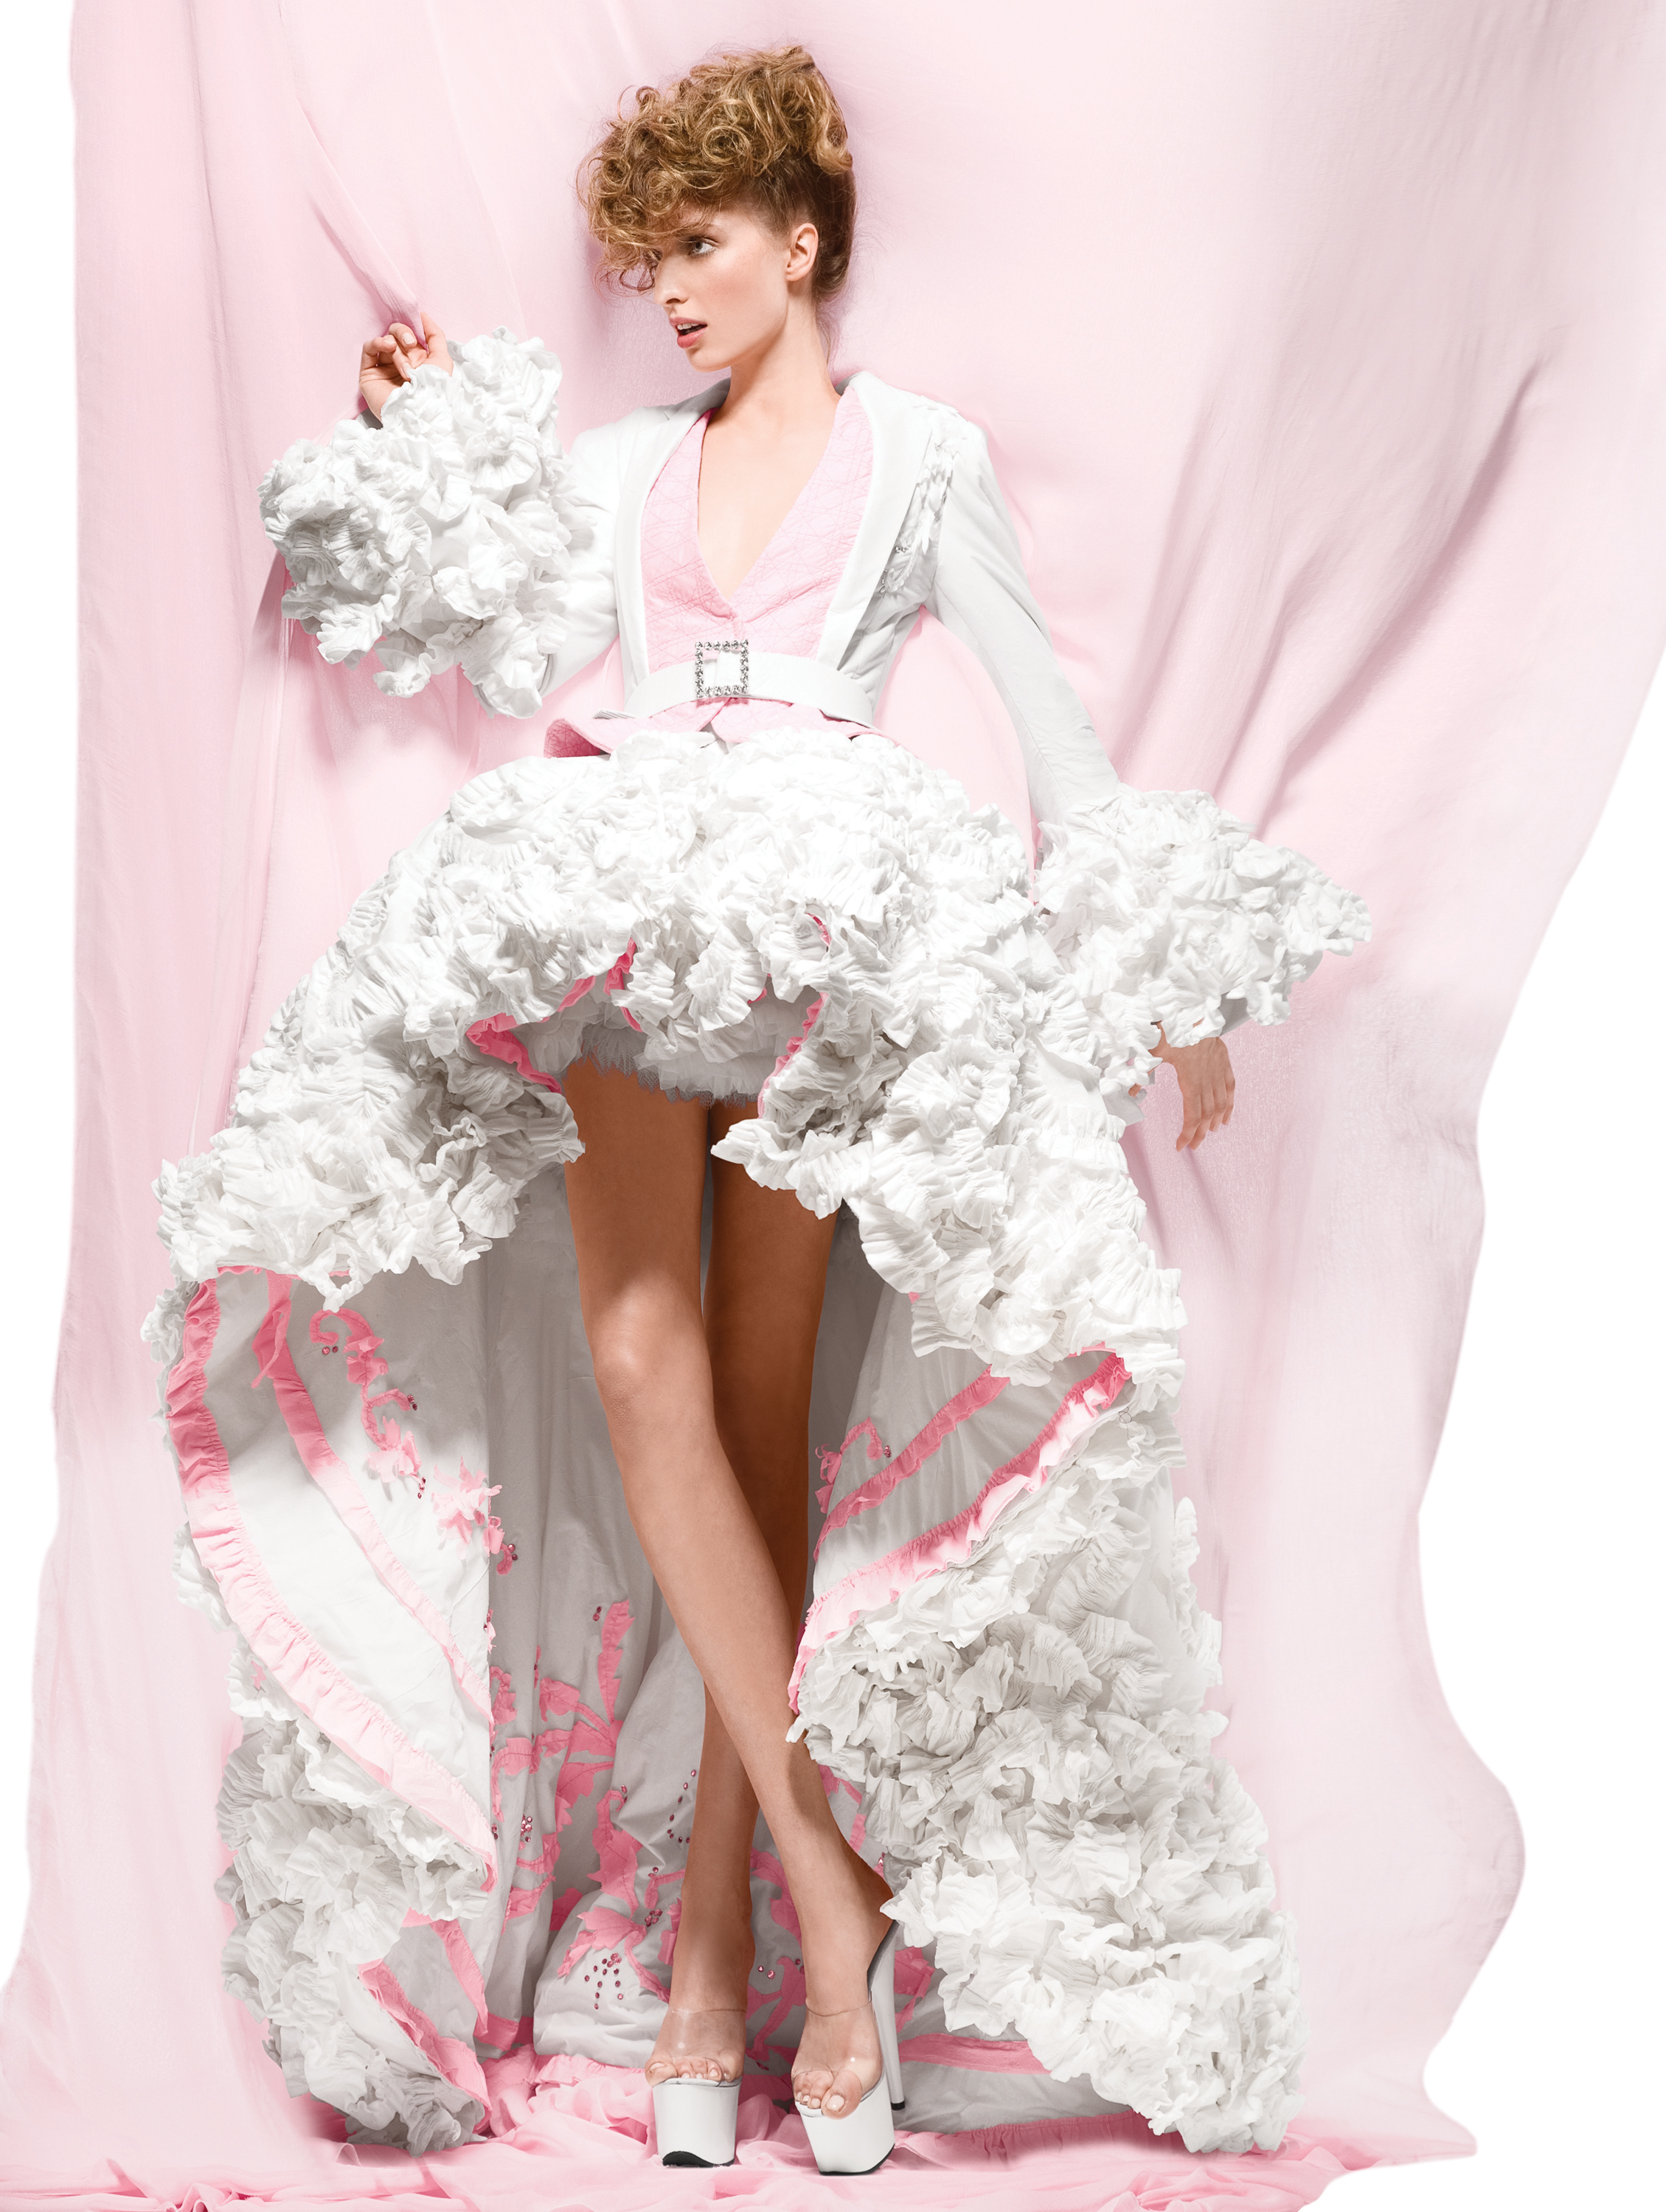 White Cashmere Collection 2009_Farley Chatto.jpg